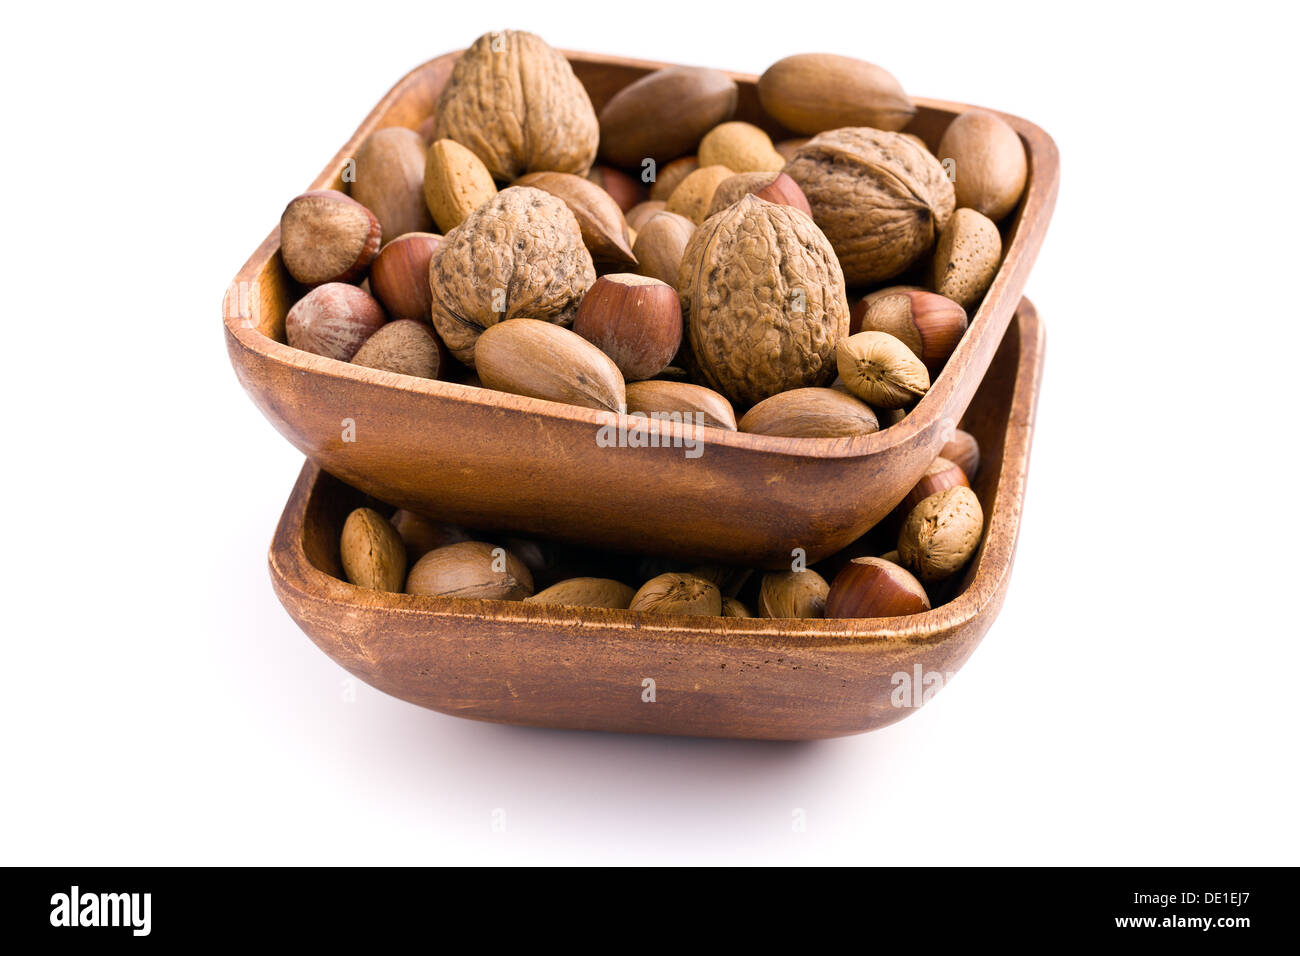 various unpeeled nuts in wooden bowl on white background - Stock Image